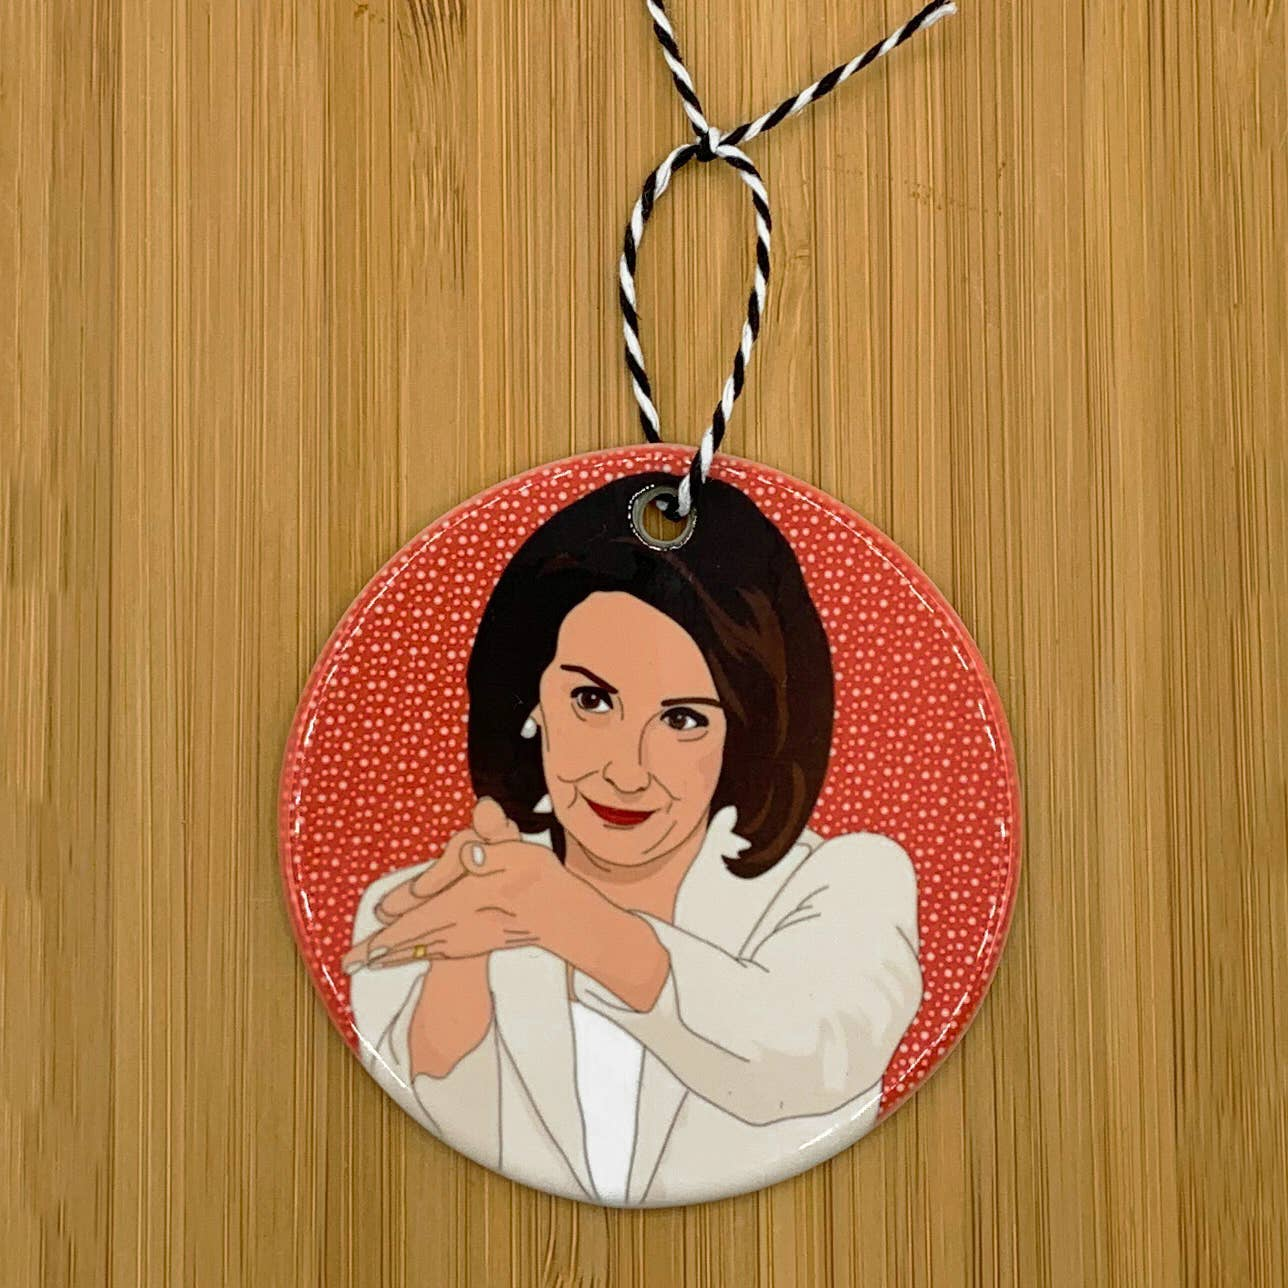 Citizen Ruth: Nancy Pelosi Clapback Ornament